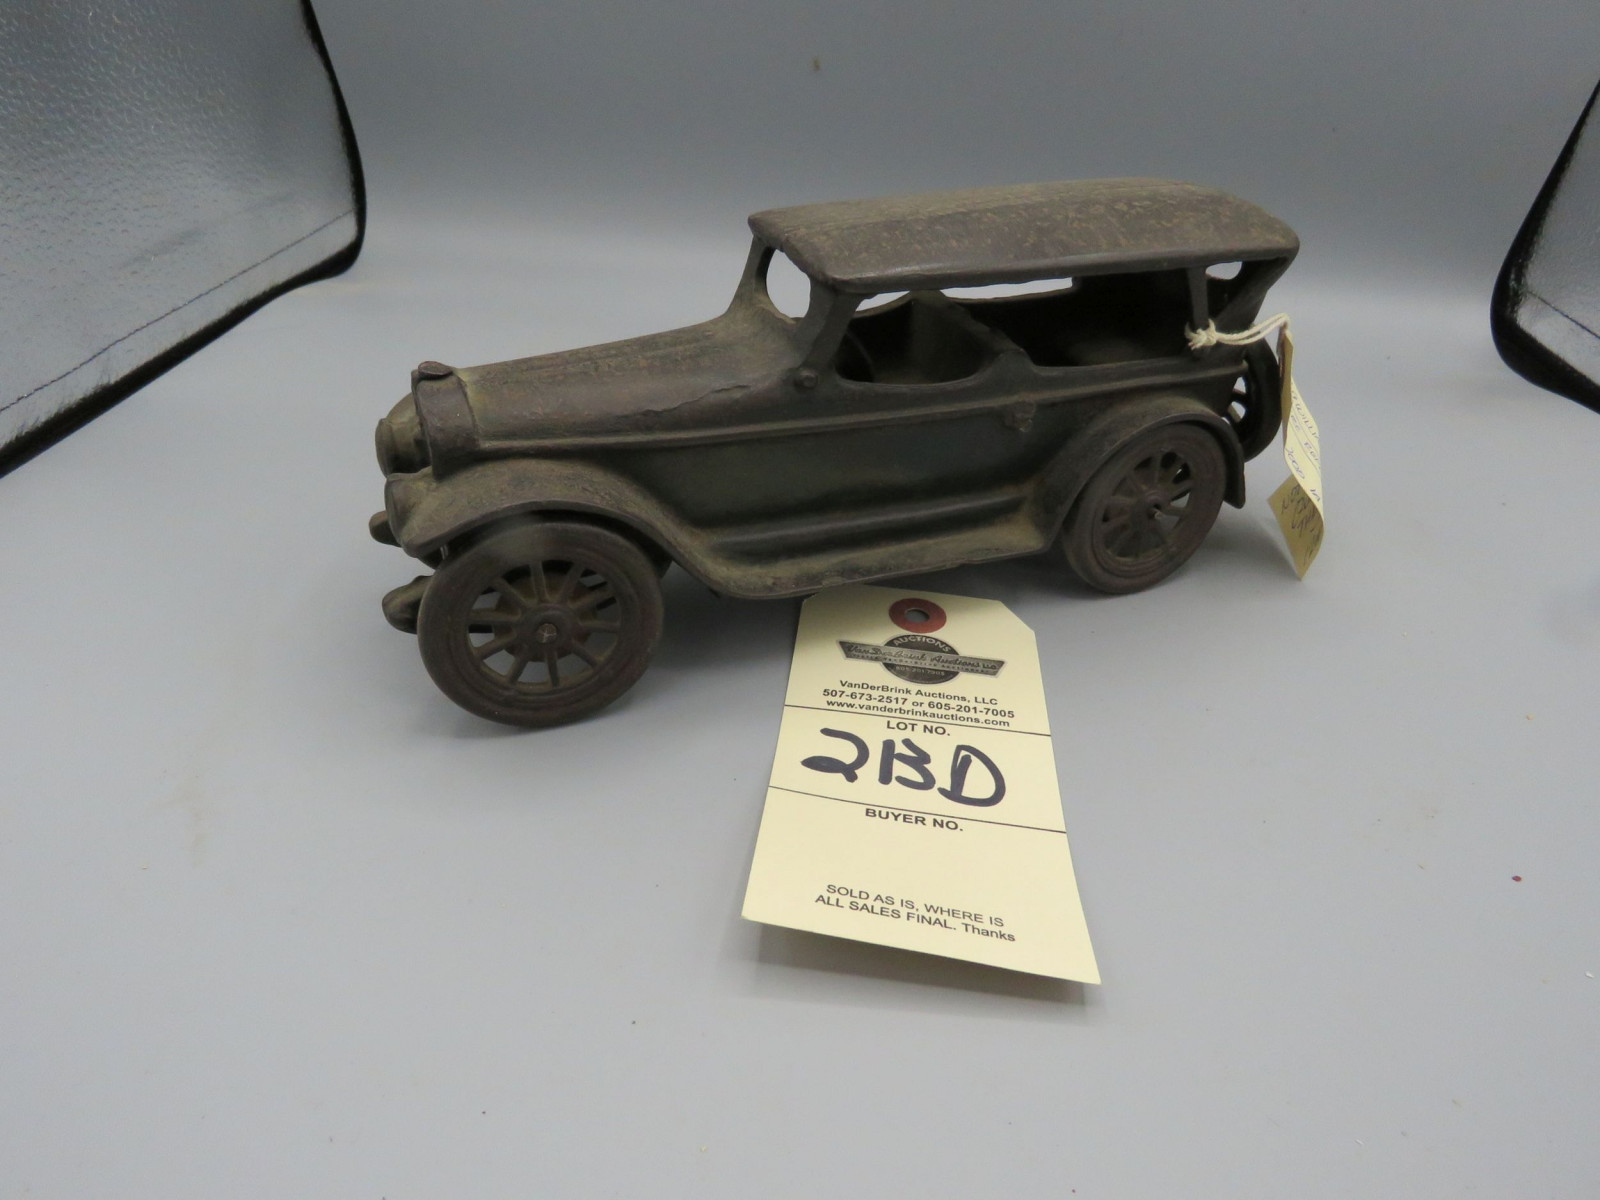 Vintage Arcade Cast Iron Touring Car - Image 2